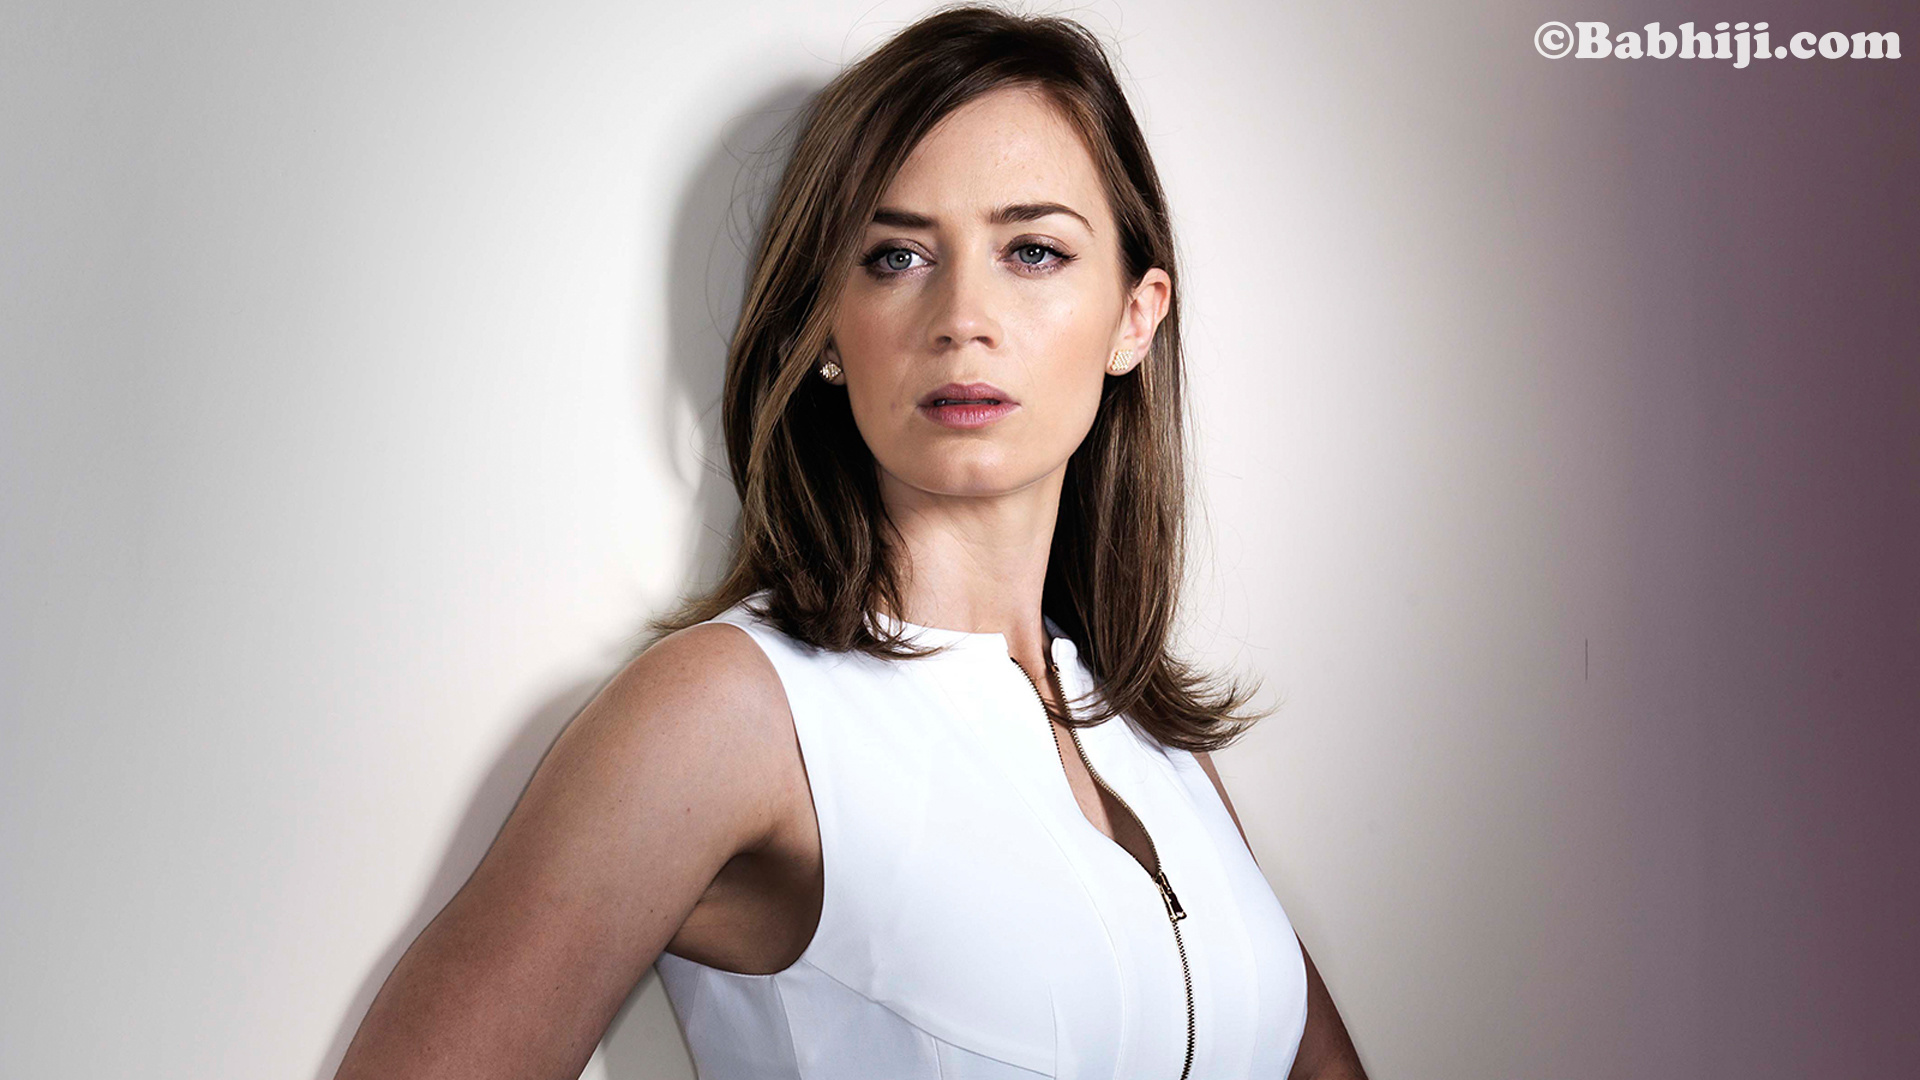 Emily Blunt, Emily Blunt Wallpaper, Emily Blunt Photo, Emily Blunt Images